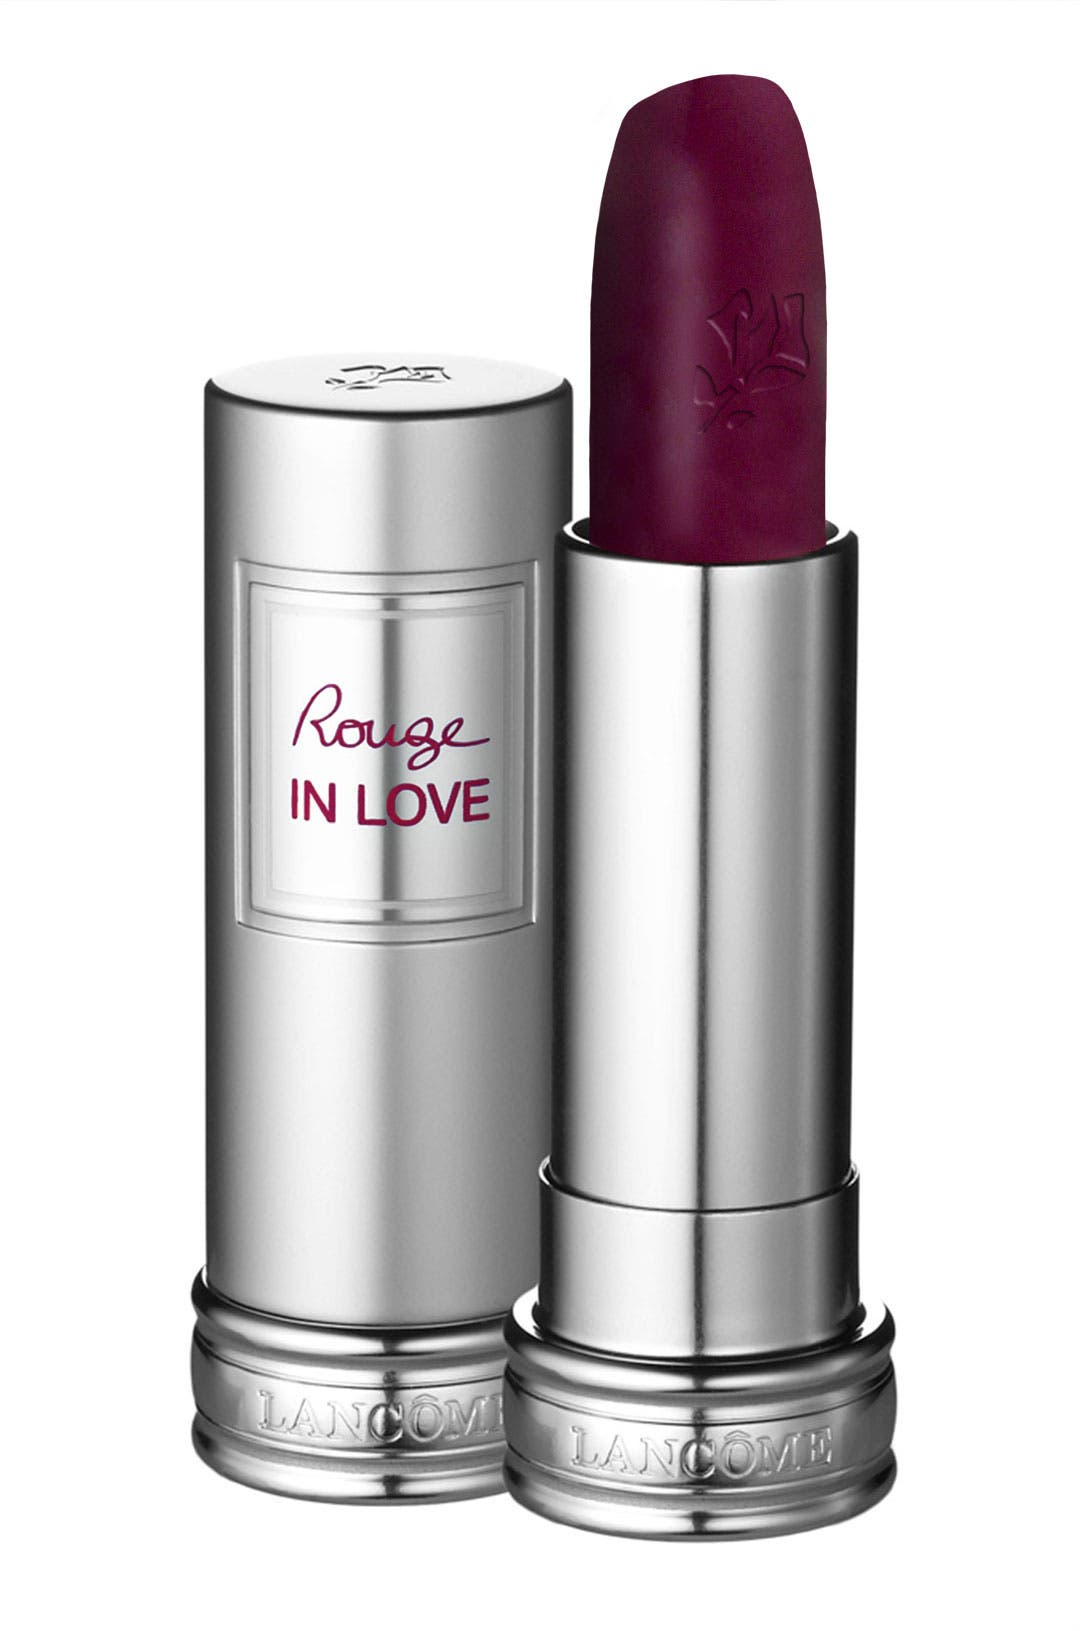 Rouge In Love Fiery Attitude by LANCÔME